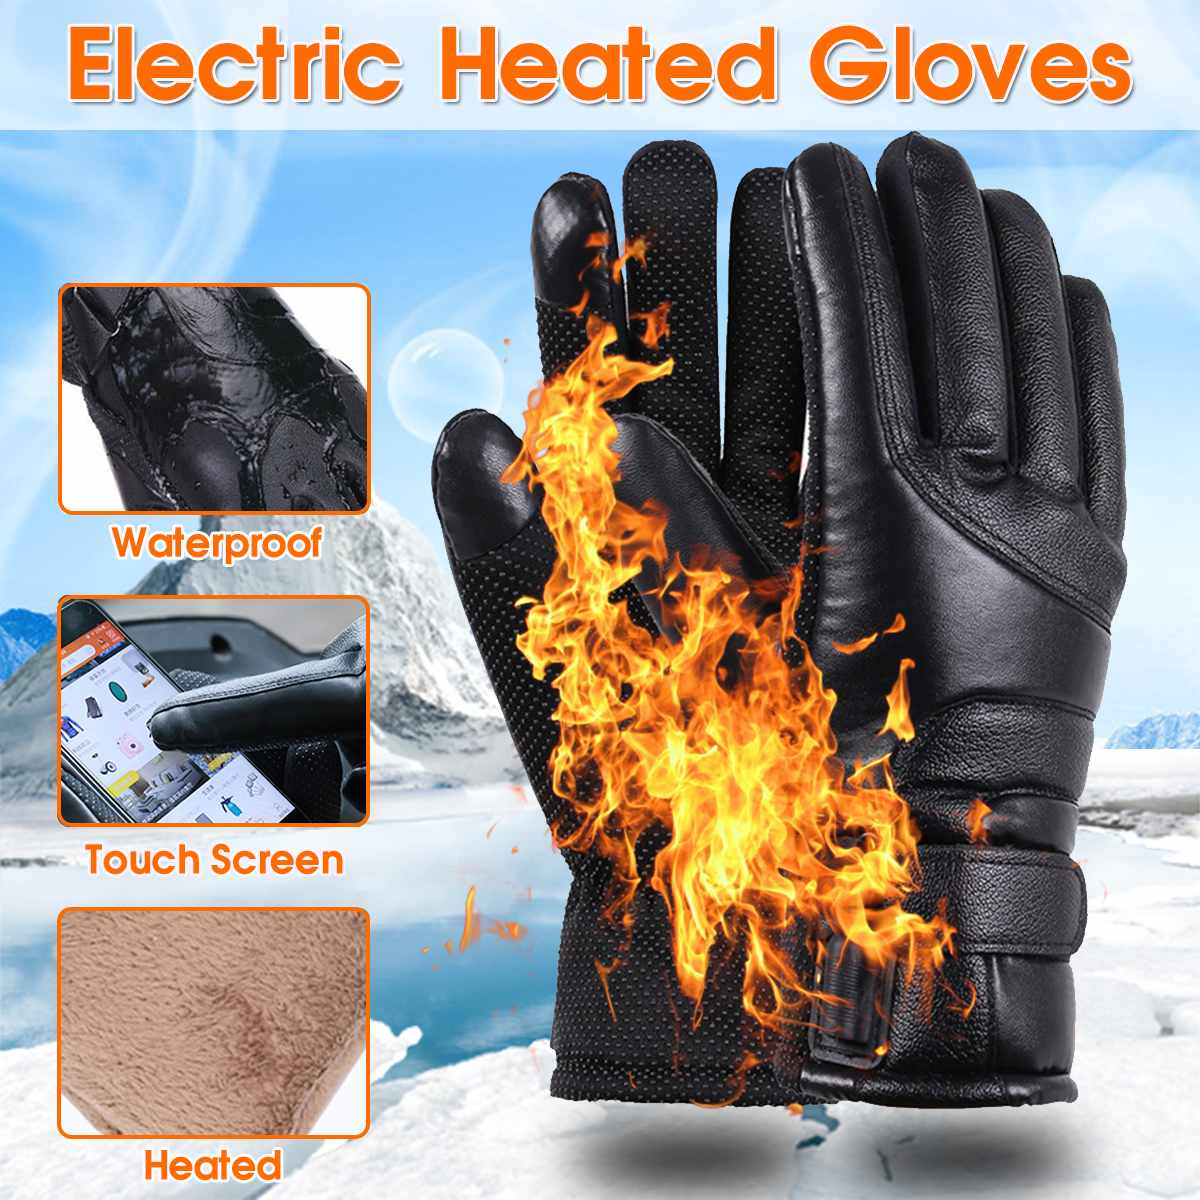 5V 5.5W Electric Heating Gloves Powered Heated Gloves For Men And Women Winter Outdoor Camping Hiking Hunting Ski Gloves